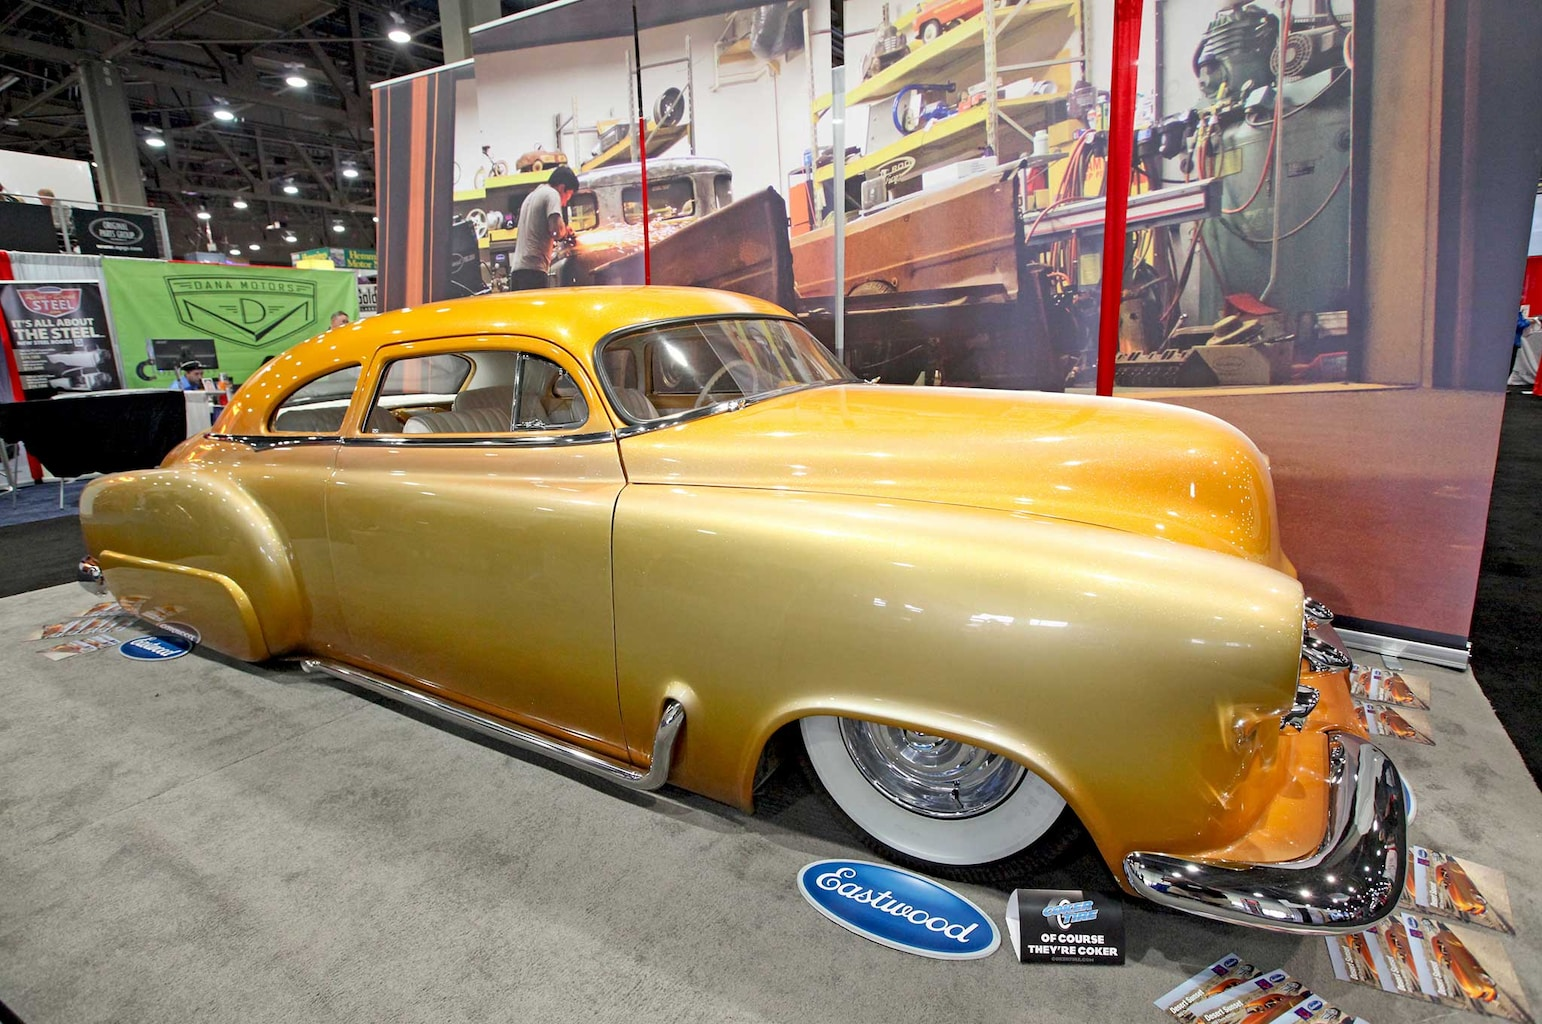 009 favorite 5 at sema 2015 gene winfield 1952 chevy kustom